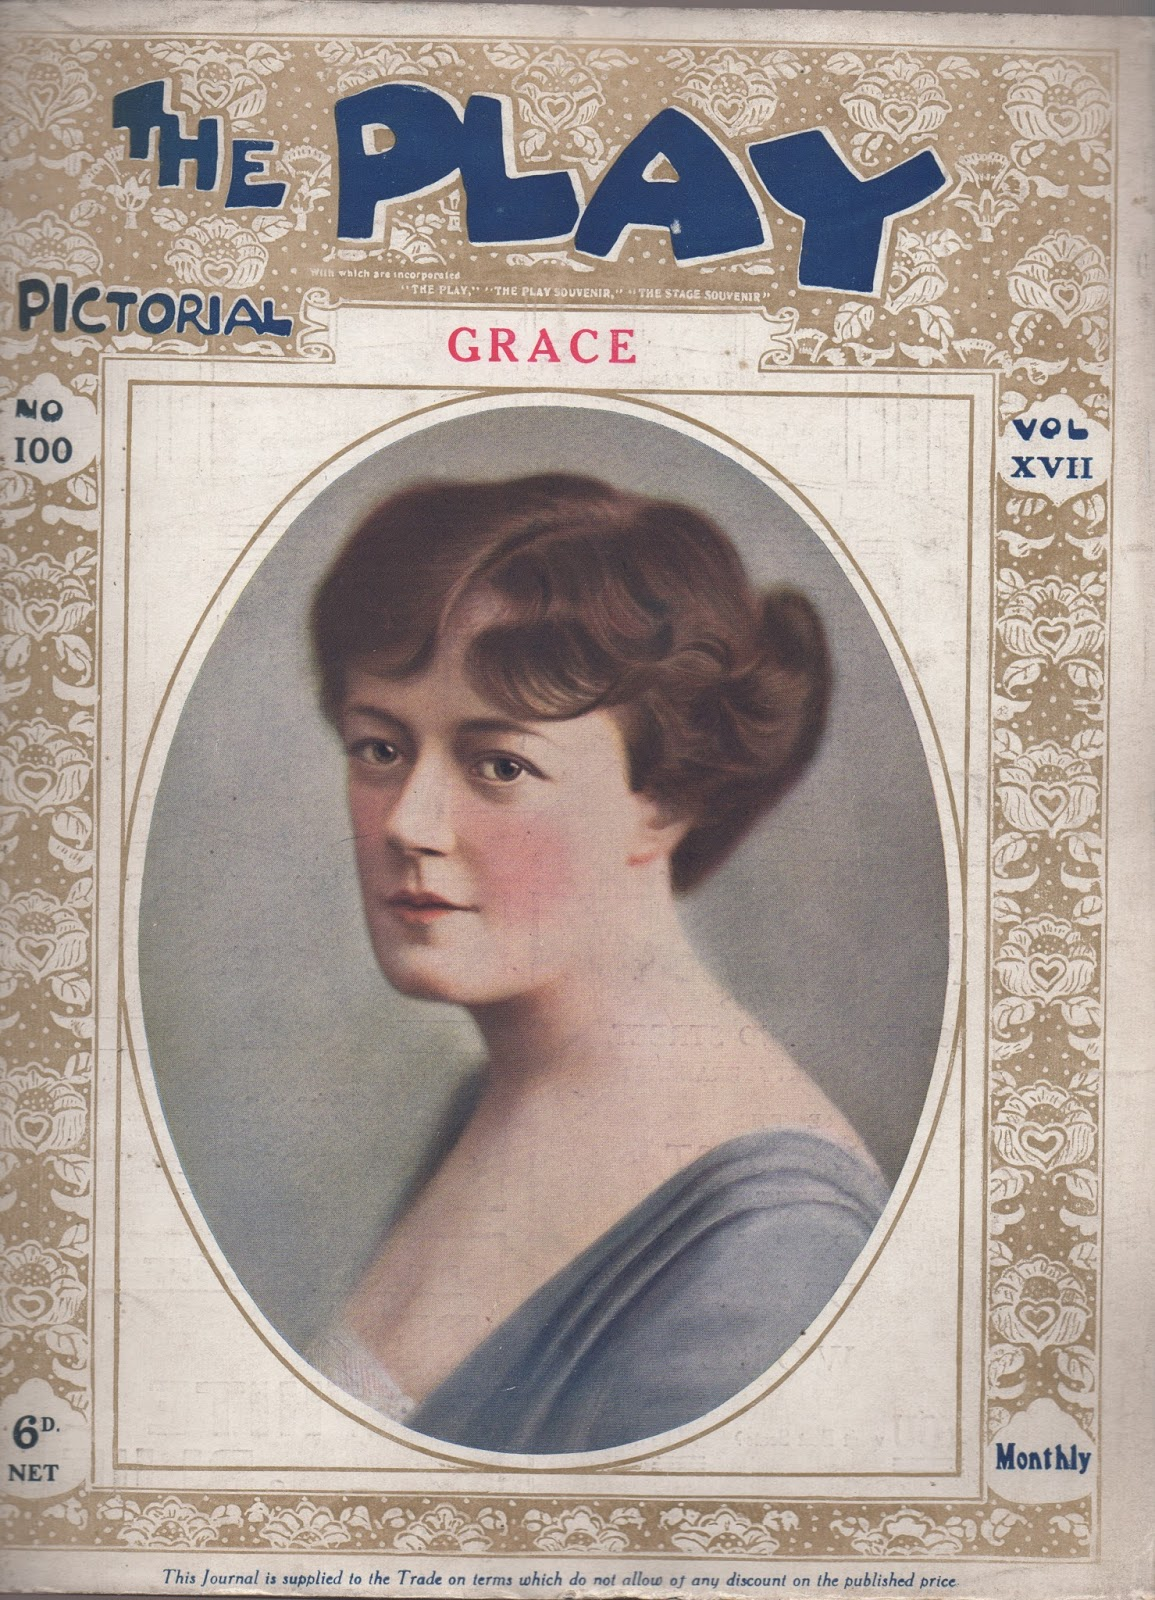 cover of The Play Pictorial - Grace by W. Somerset Maugham